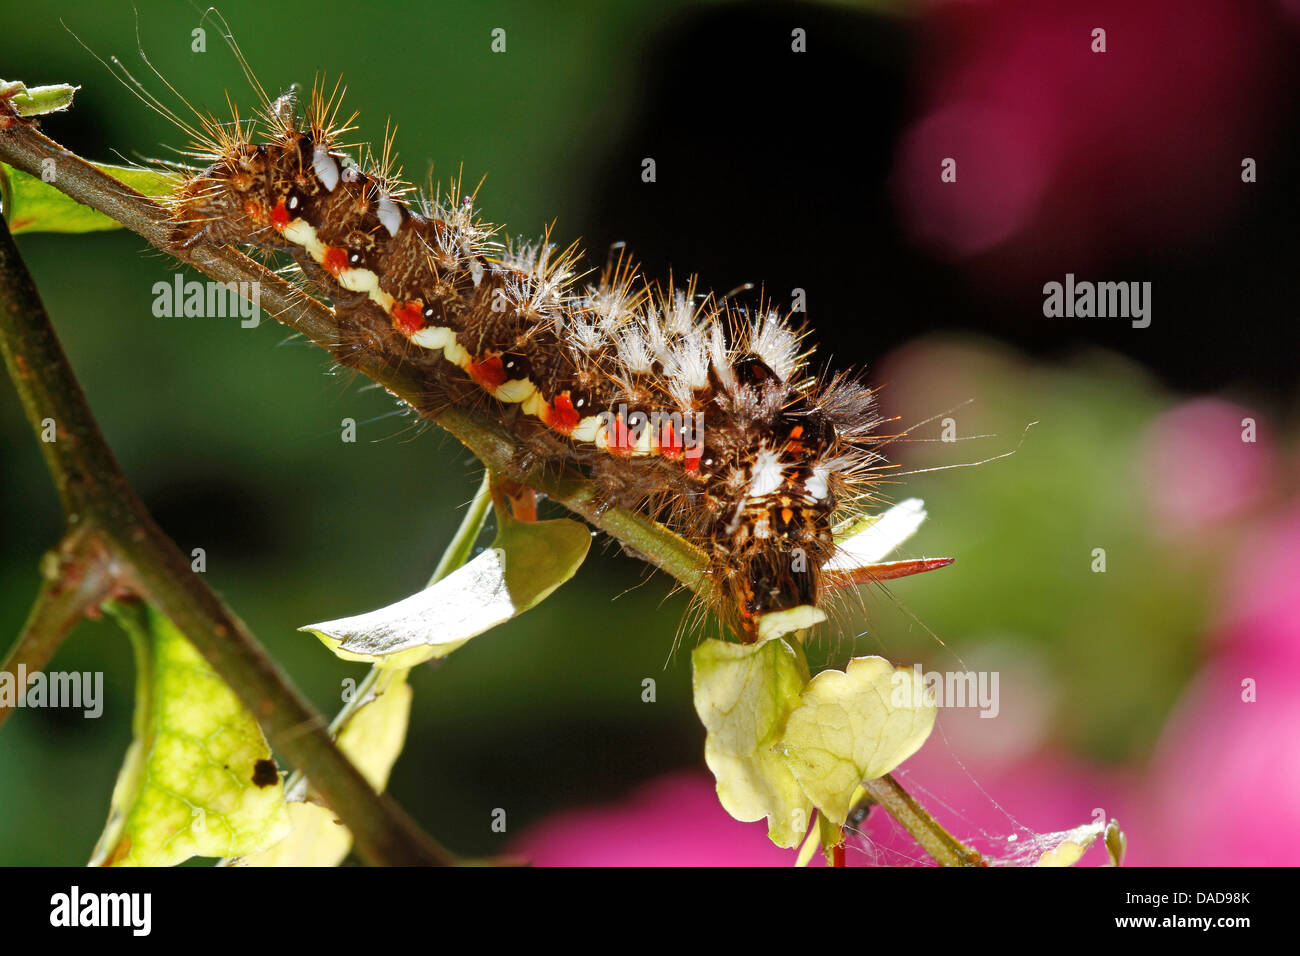 knot grass (Acronicta rumicis, Apatele rumicis), caterpillar on a twig, Germany - Stock Image